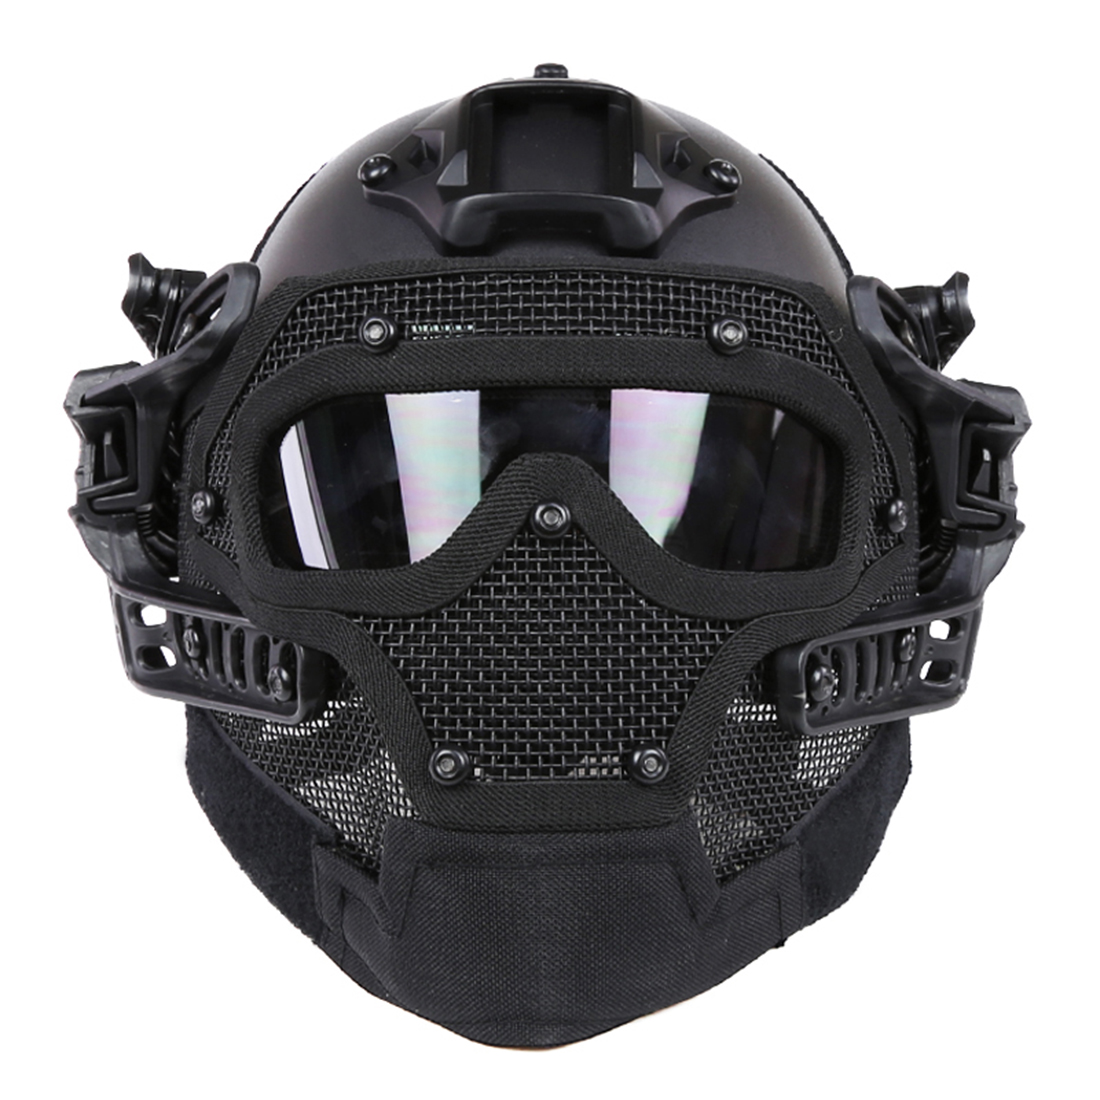 купить Surwish Steel Wire Protective FAST Helmet Suit for Nerf/for Airsoft Outdoor Activity - Black по цене 4846.18 рублей